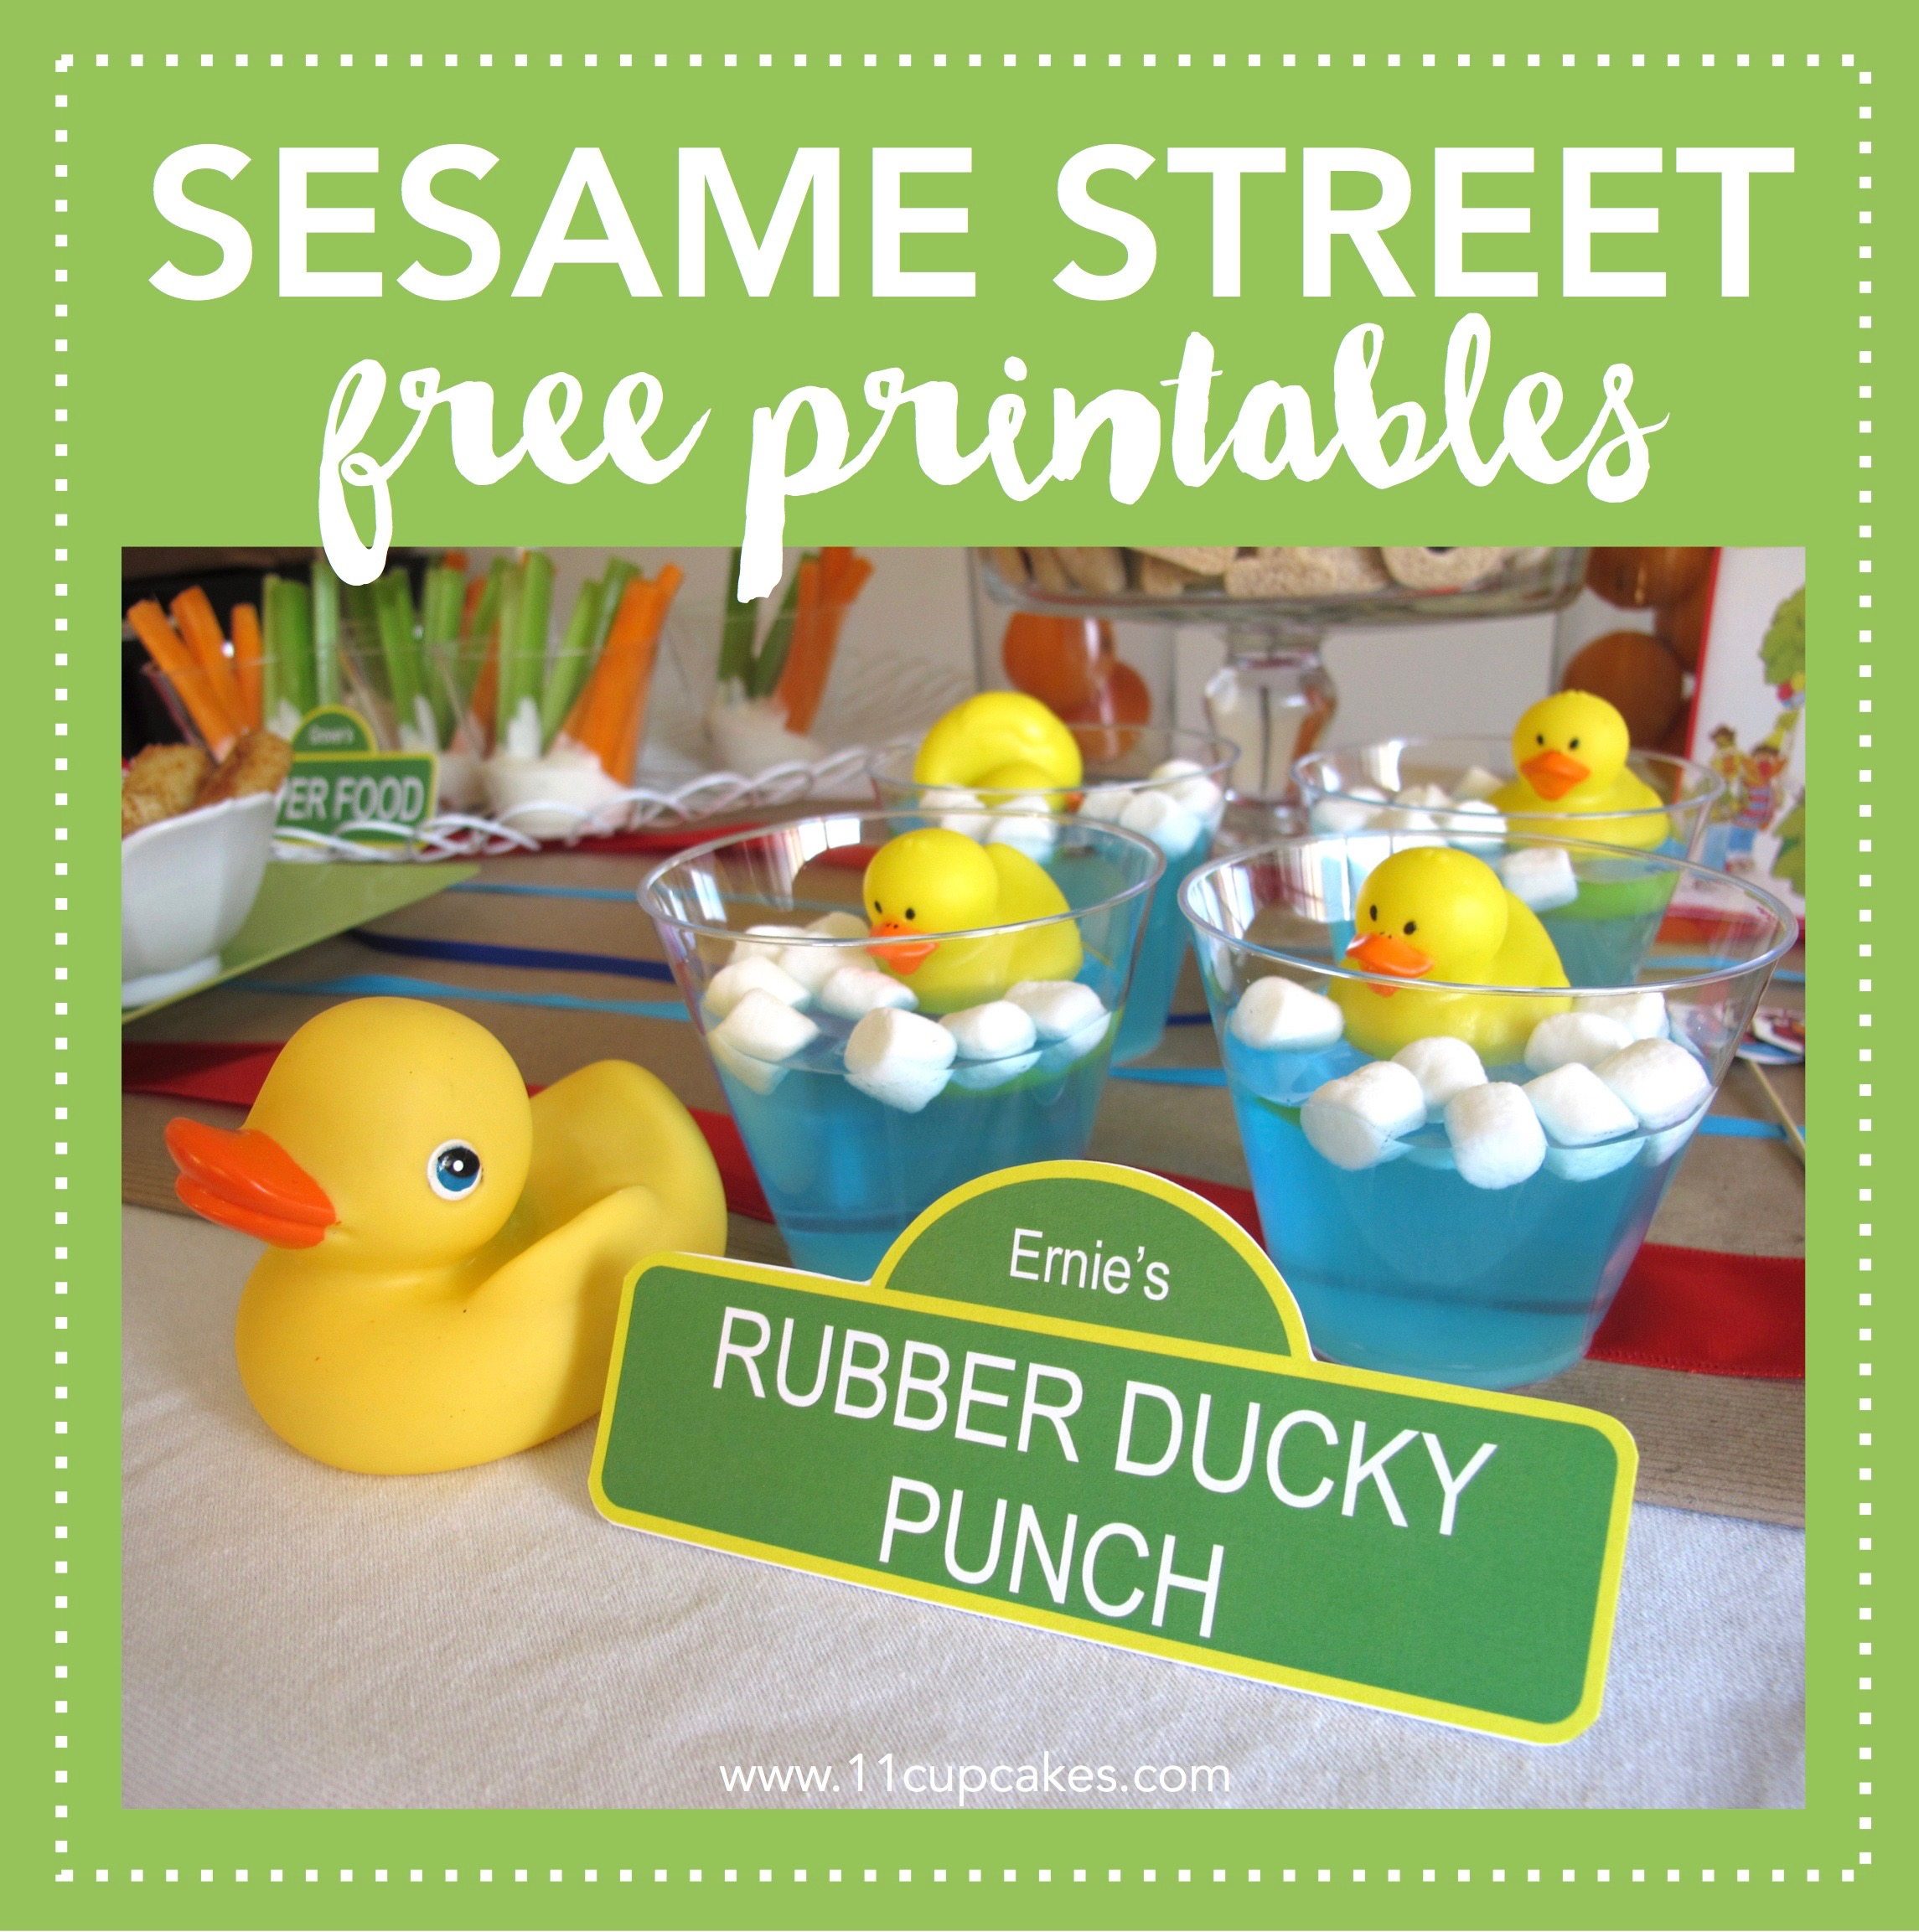 Free Sesame Street Party Labels